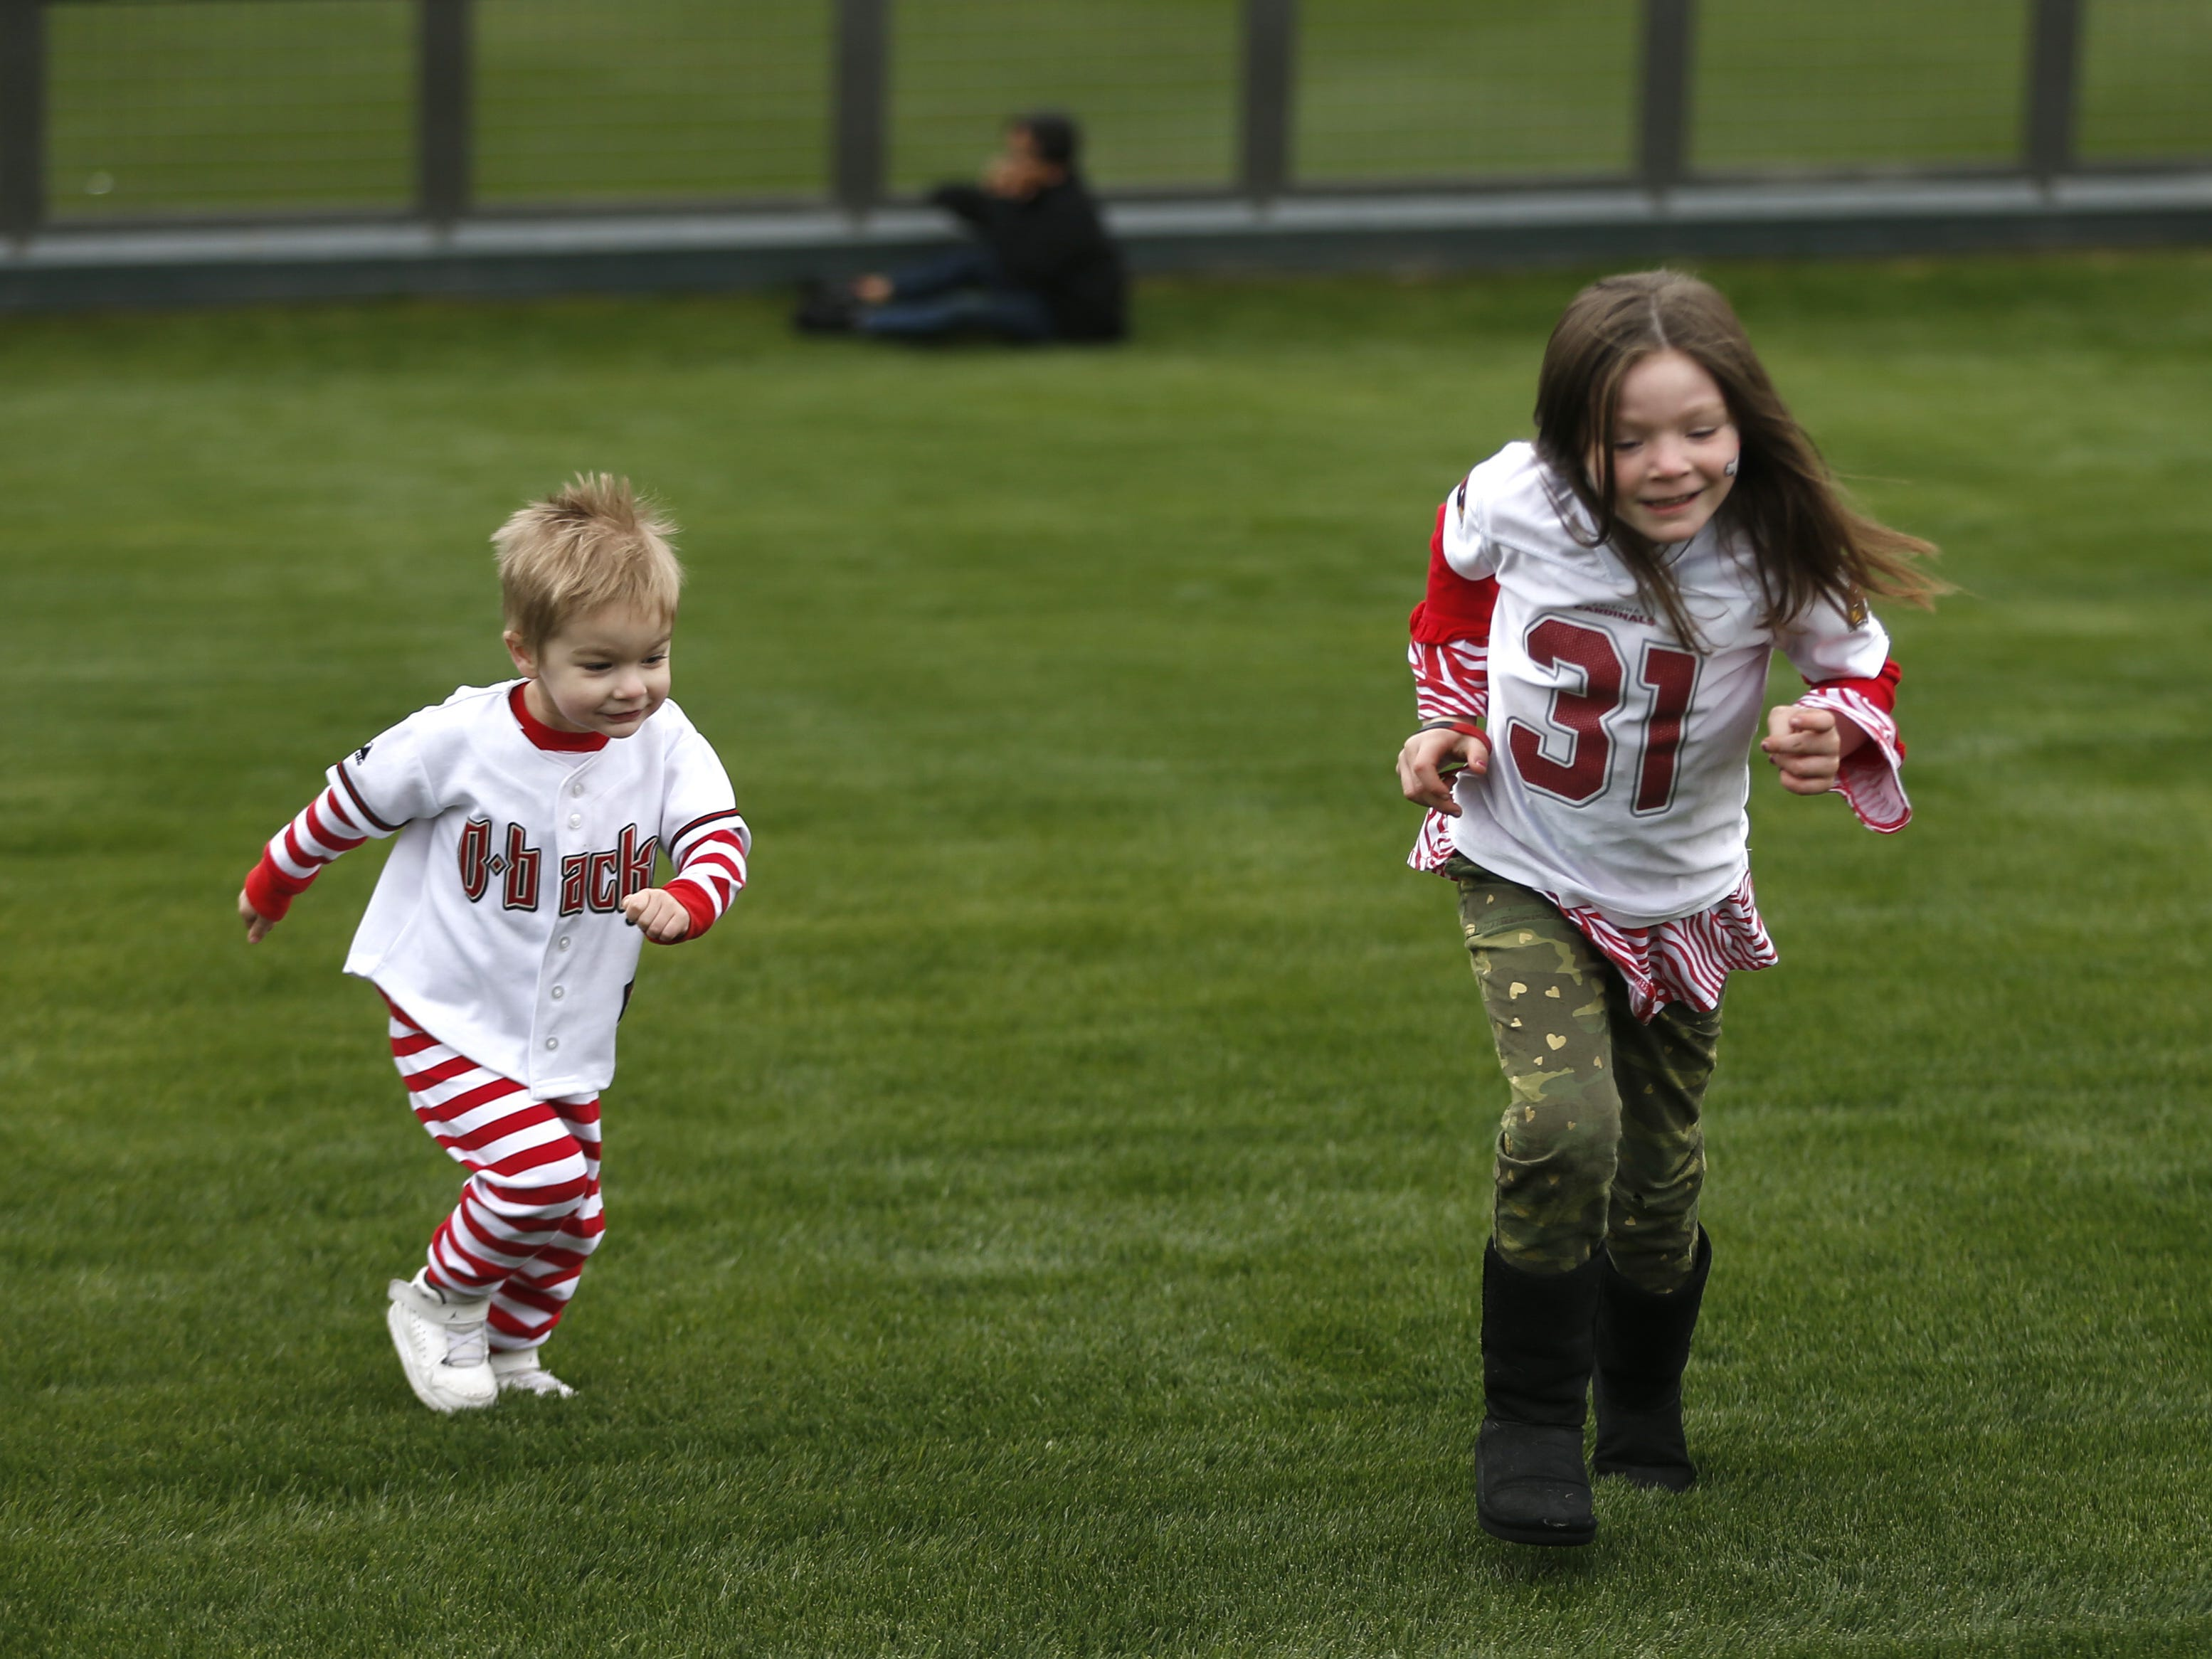 Atlas Palmer, 2, and his sister Aurora Palmer run up the green berm during the Diamondbacks Fan Fest at Salt River at Talking Sticks on February 9, 2019.